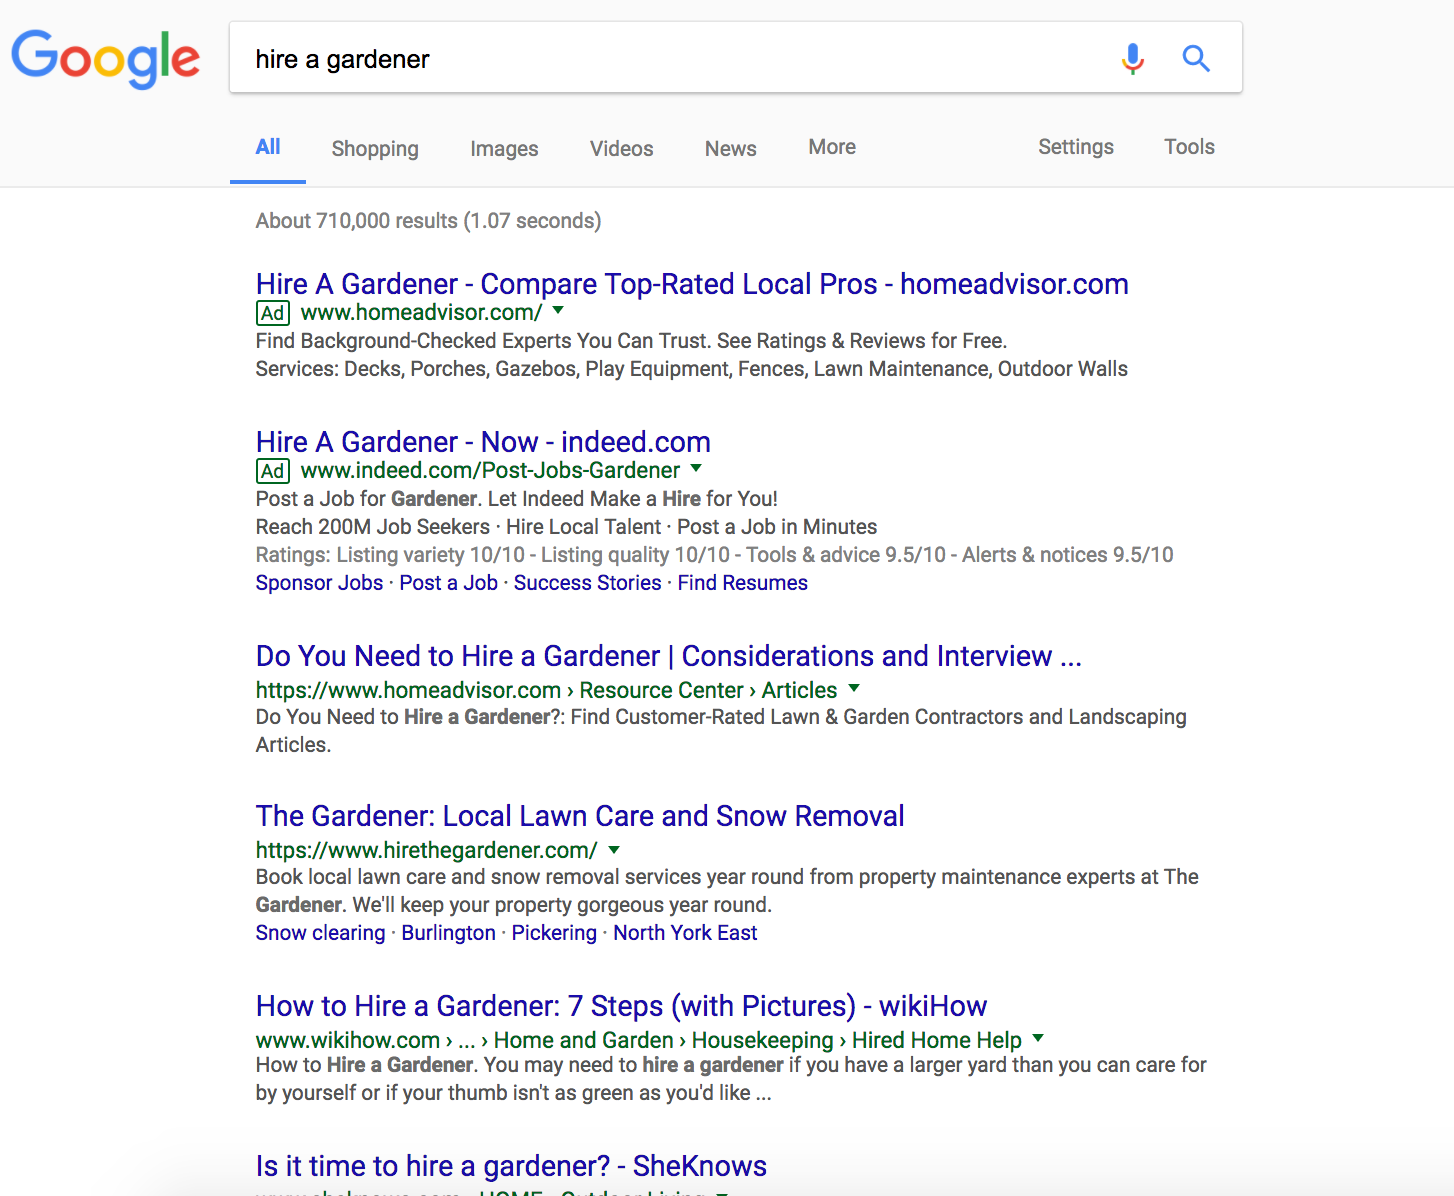 google general results